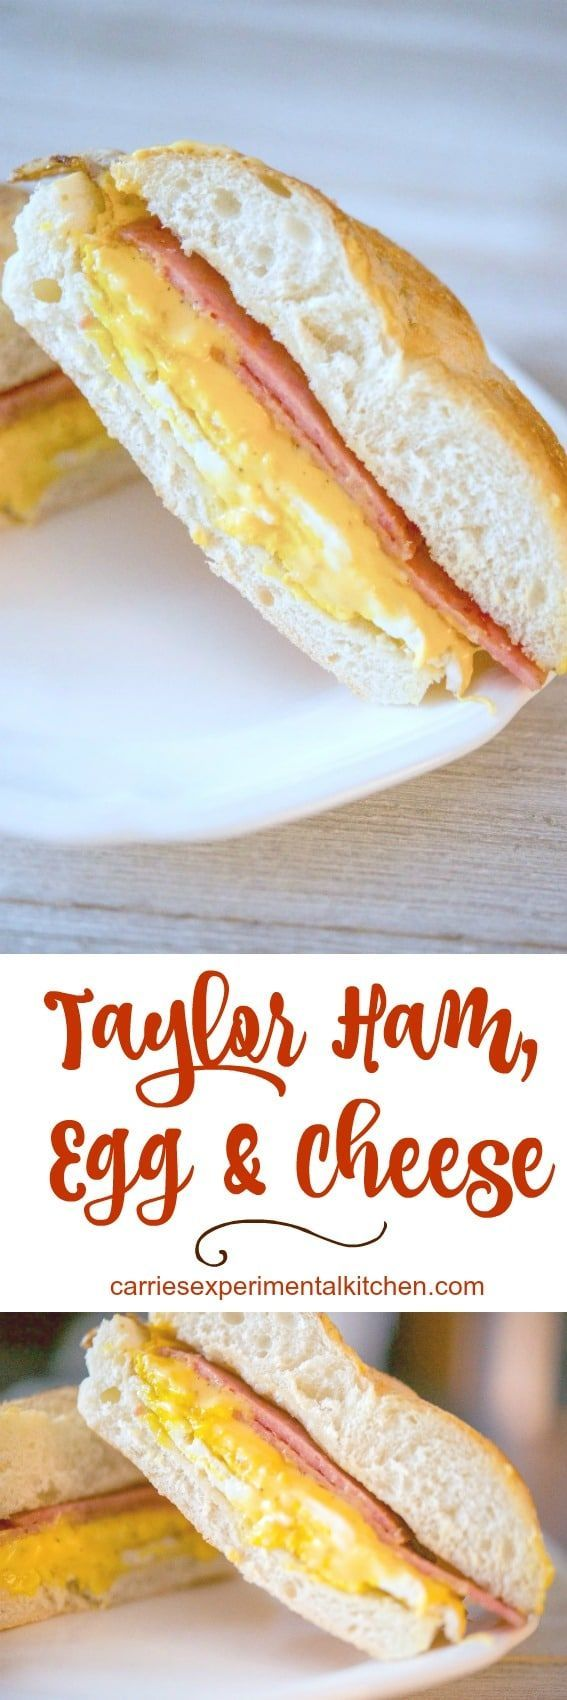 Taylor Ham, Egg and Cheese on a Hard Roll is the quintessential New Jersey breakfast sandwich. When ordering, don't forget to let them know if you want them to add salt, pepper and ketchup!#breakfast #sandwich #taylorham #newjersey